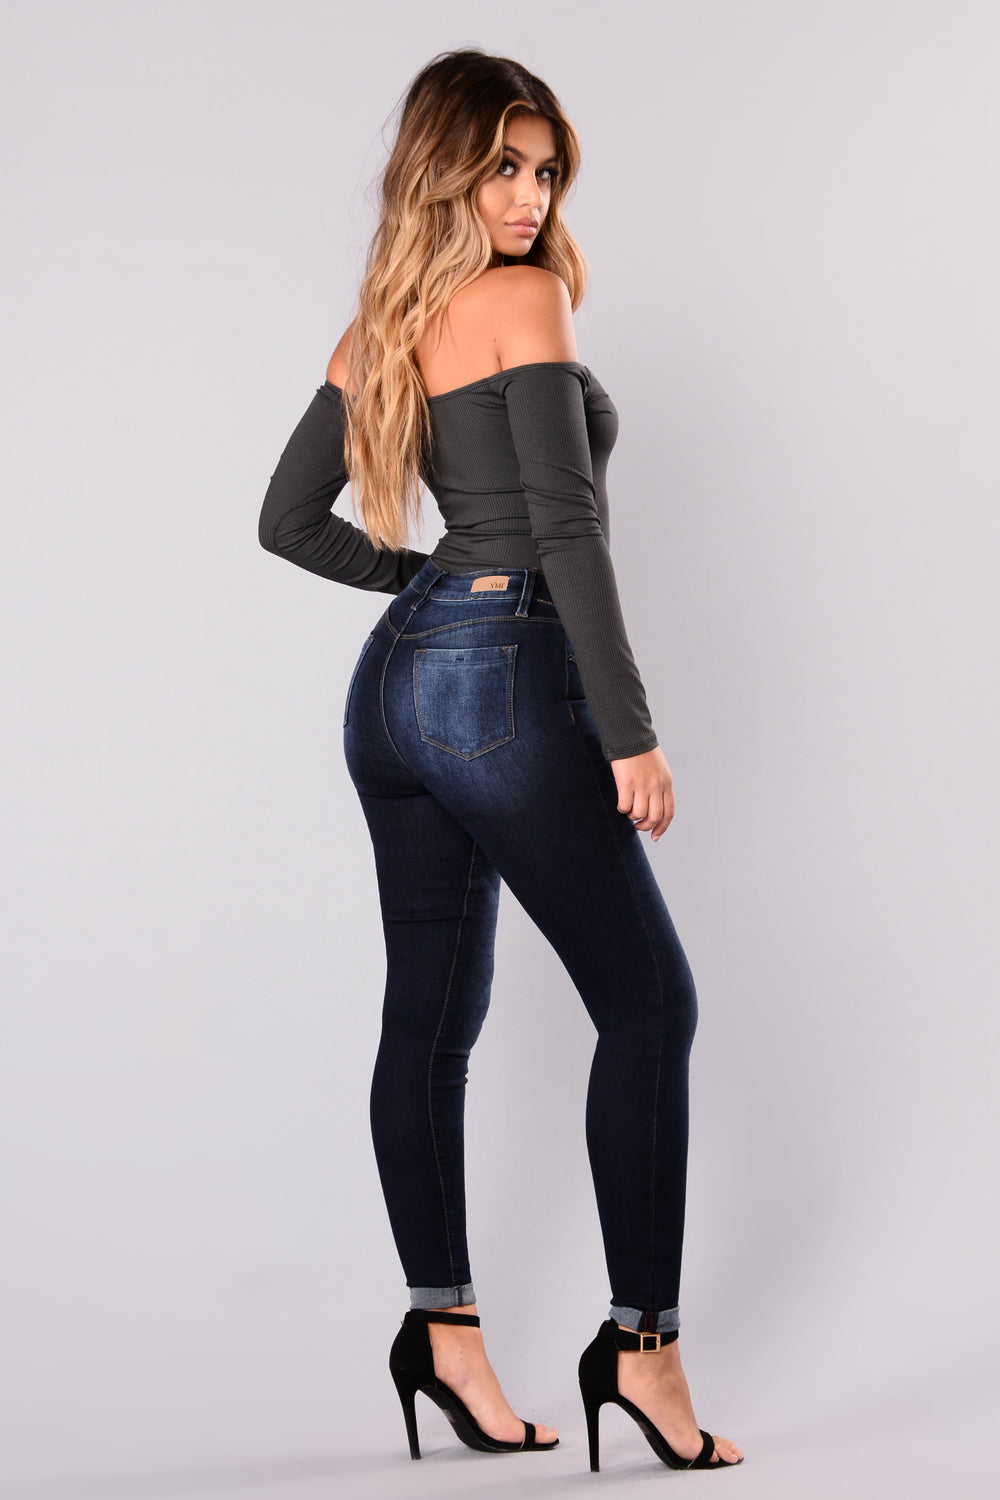 Fool In Love Off Shoulder Bodysuit - Charcoal